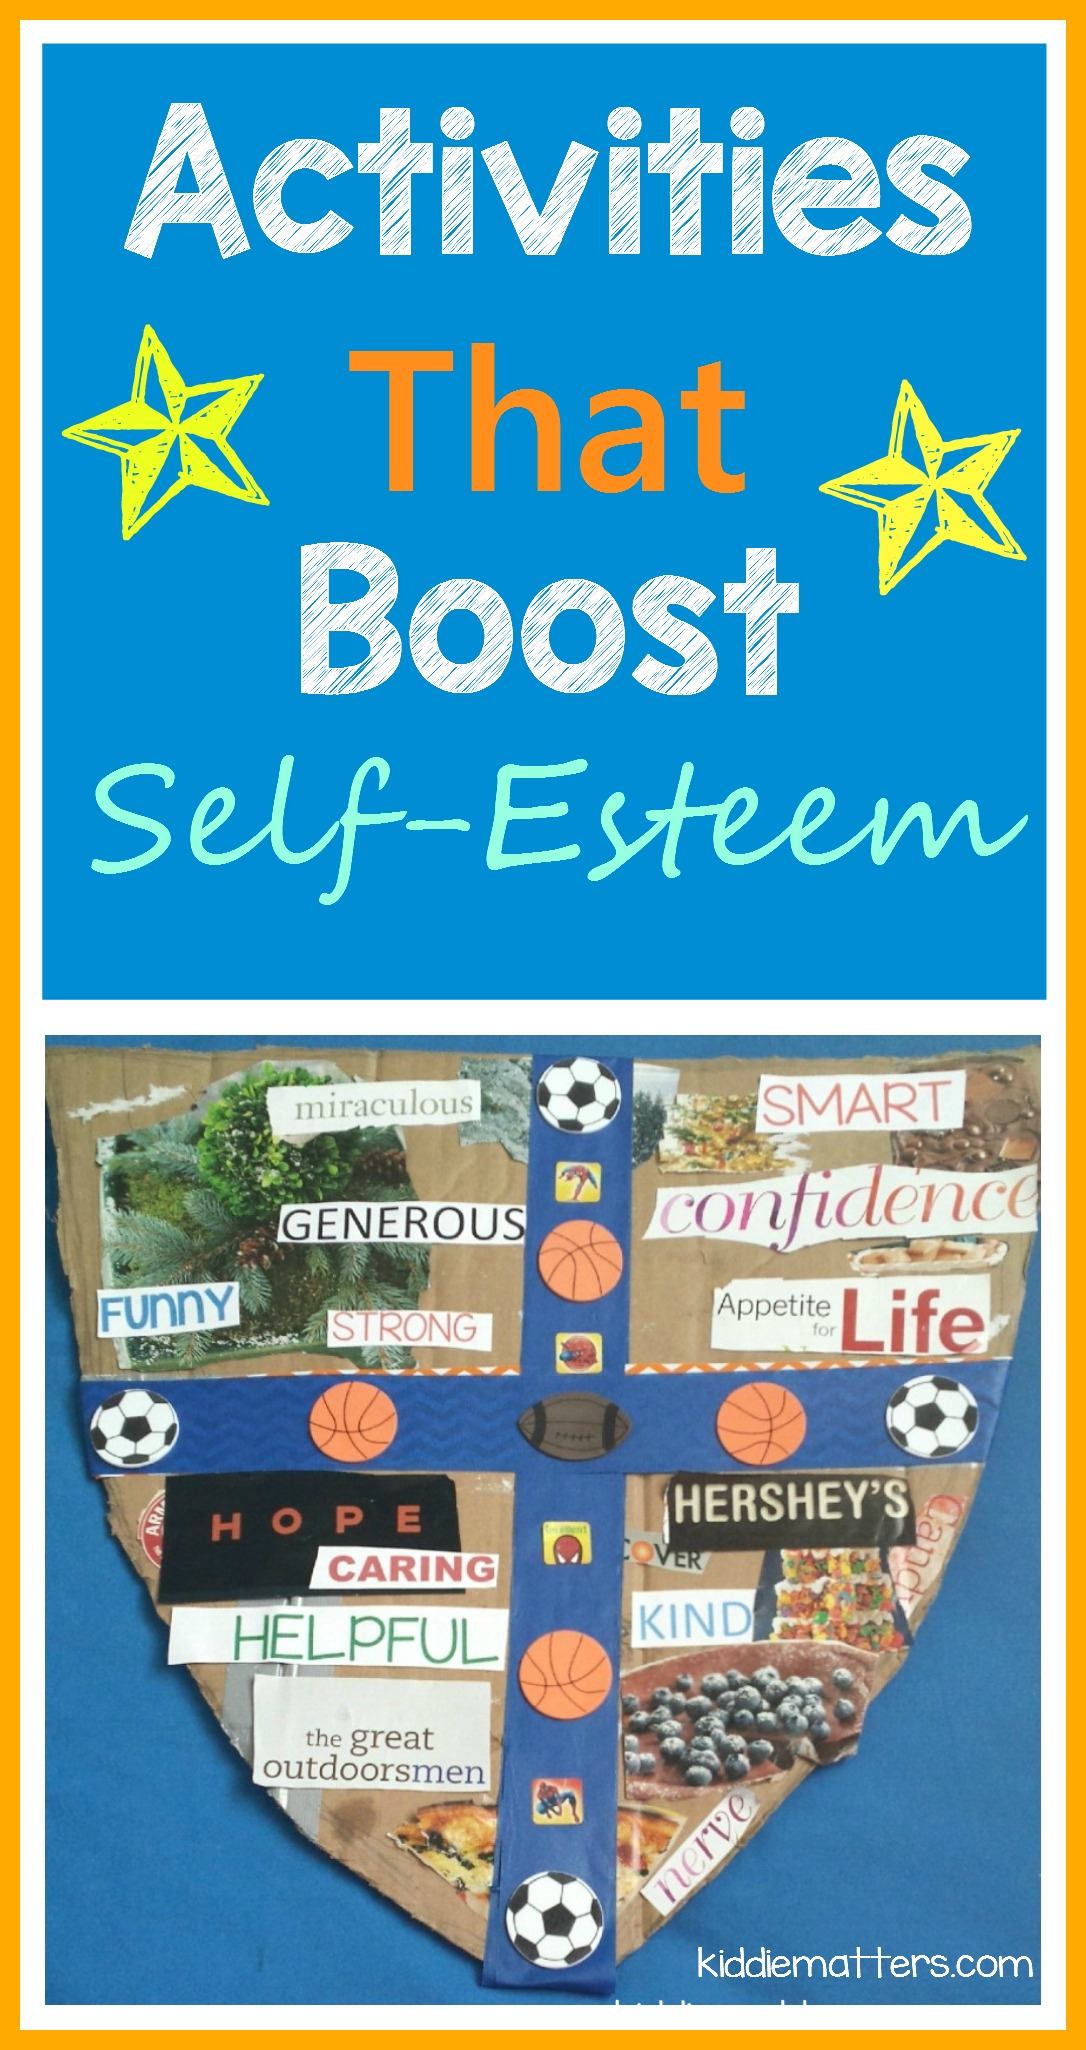 Activities That Boost Children's Self-Esteem